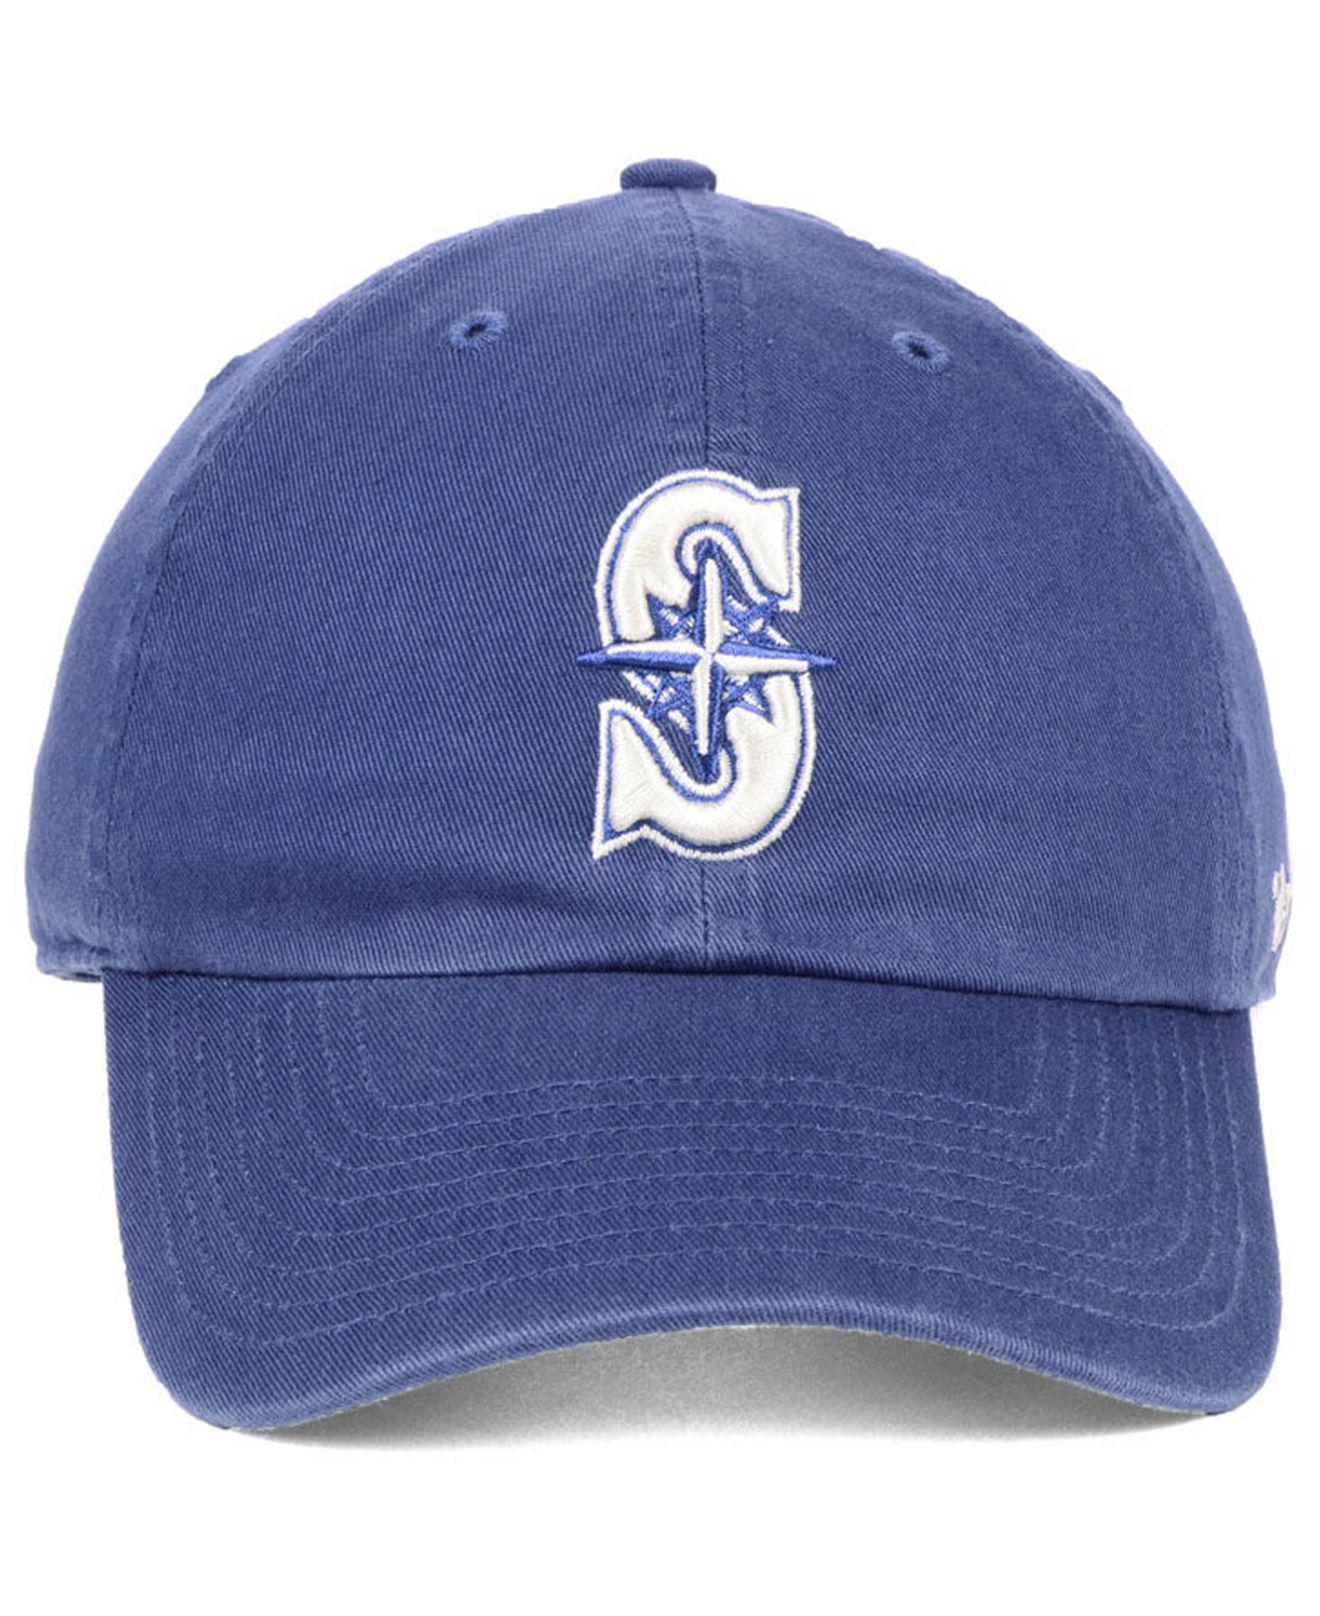 check out 196ab dff09 Lyst - 47 Brand Seattle Mariners Timber Blue Clean Up Strapback Cap in Blue  for Men